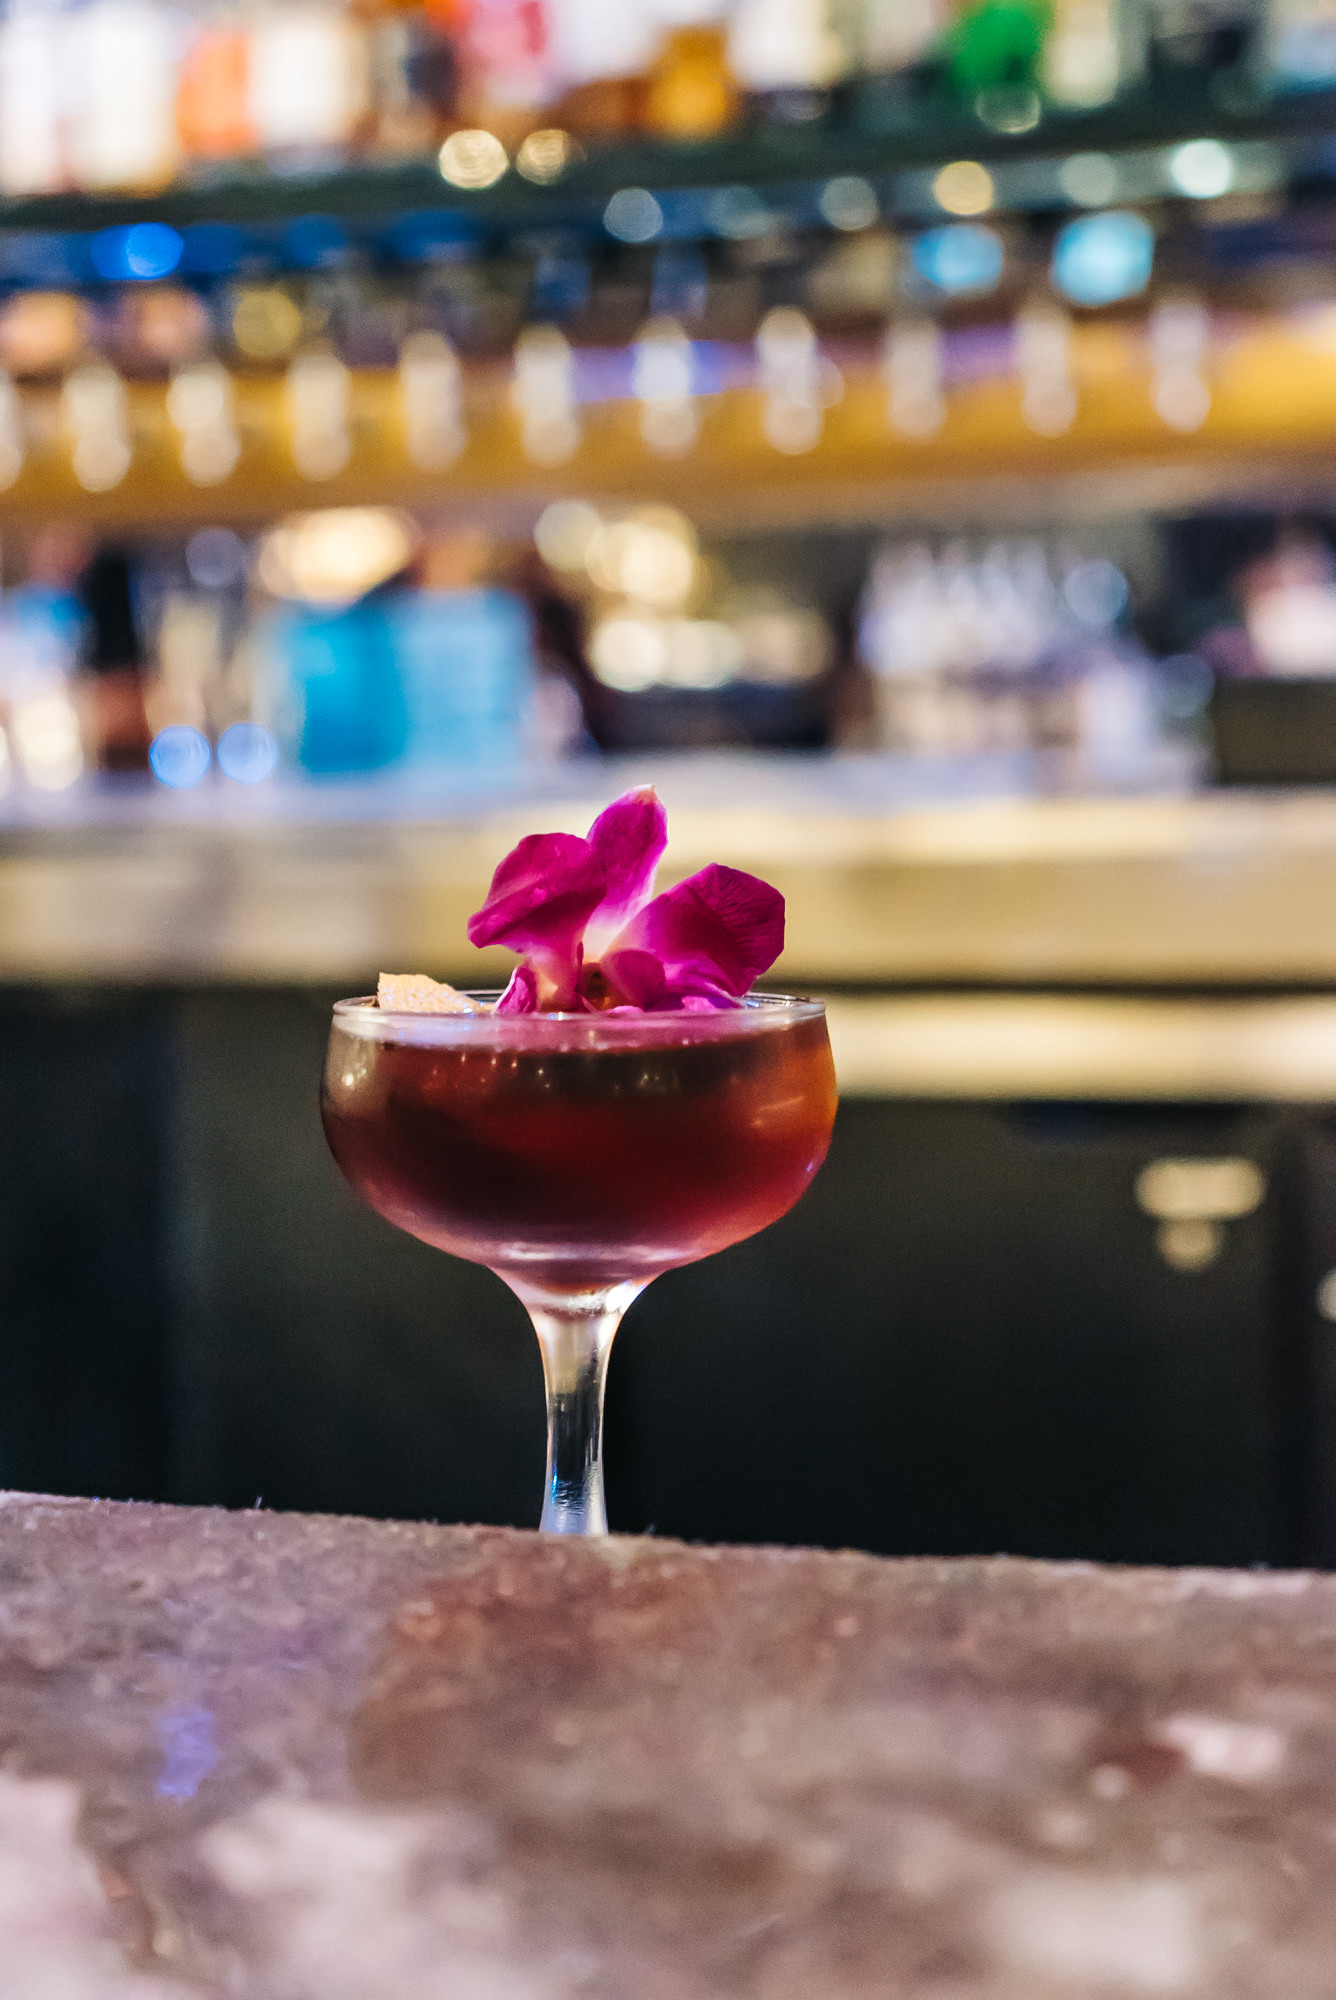 Japanese to English Cocktail - The Flagship of Cloak & PEtal